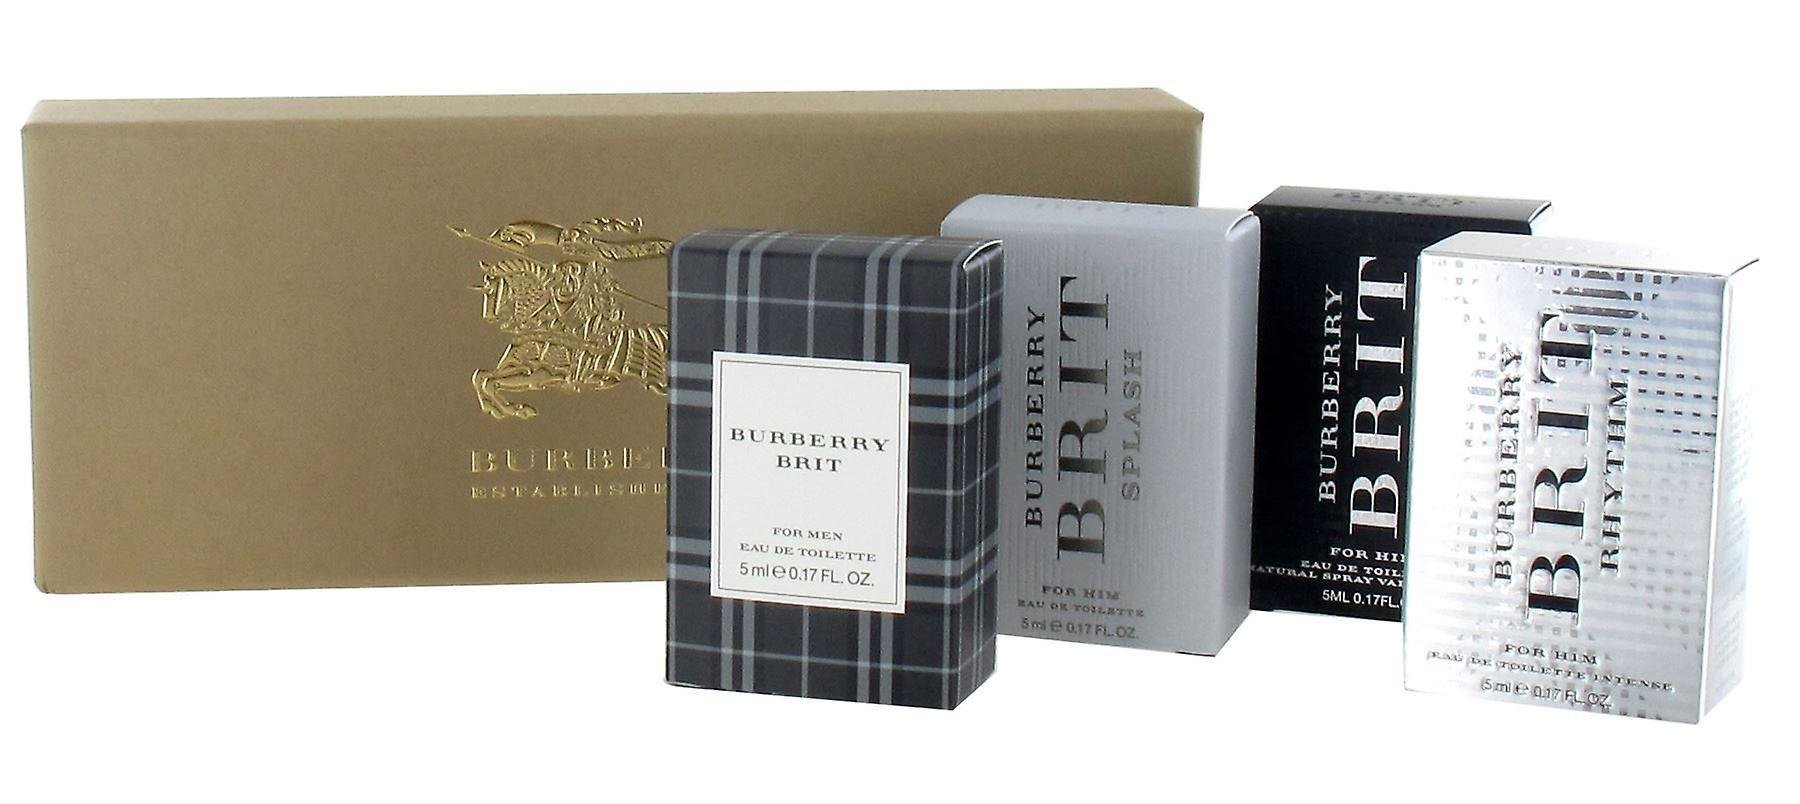 Burberry miniuture gift set 00021